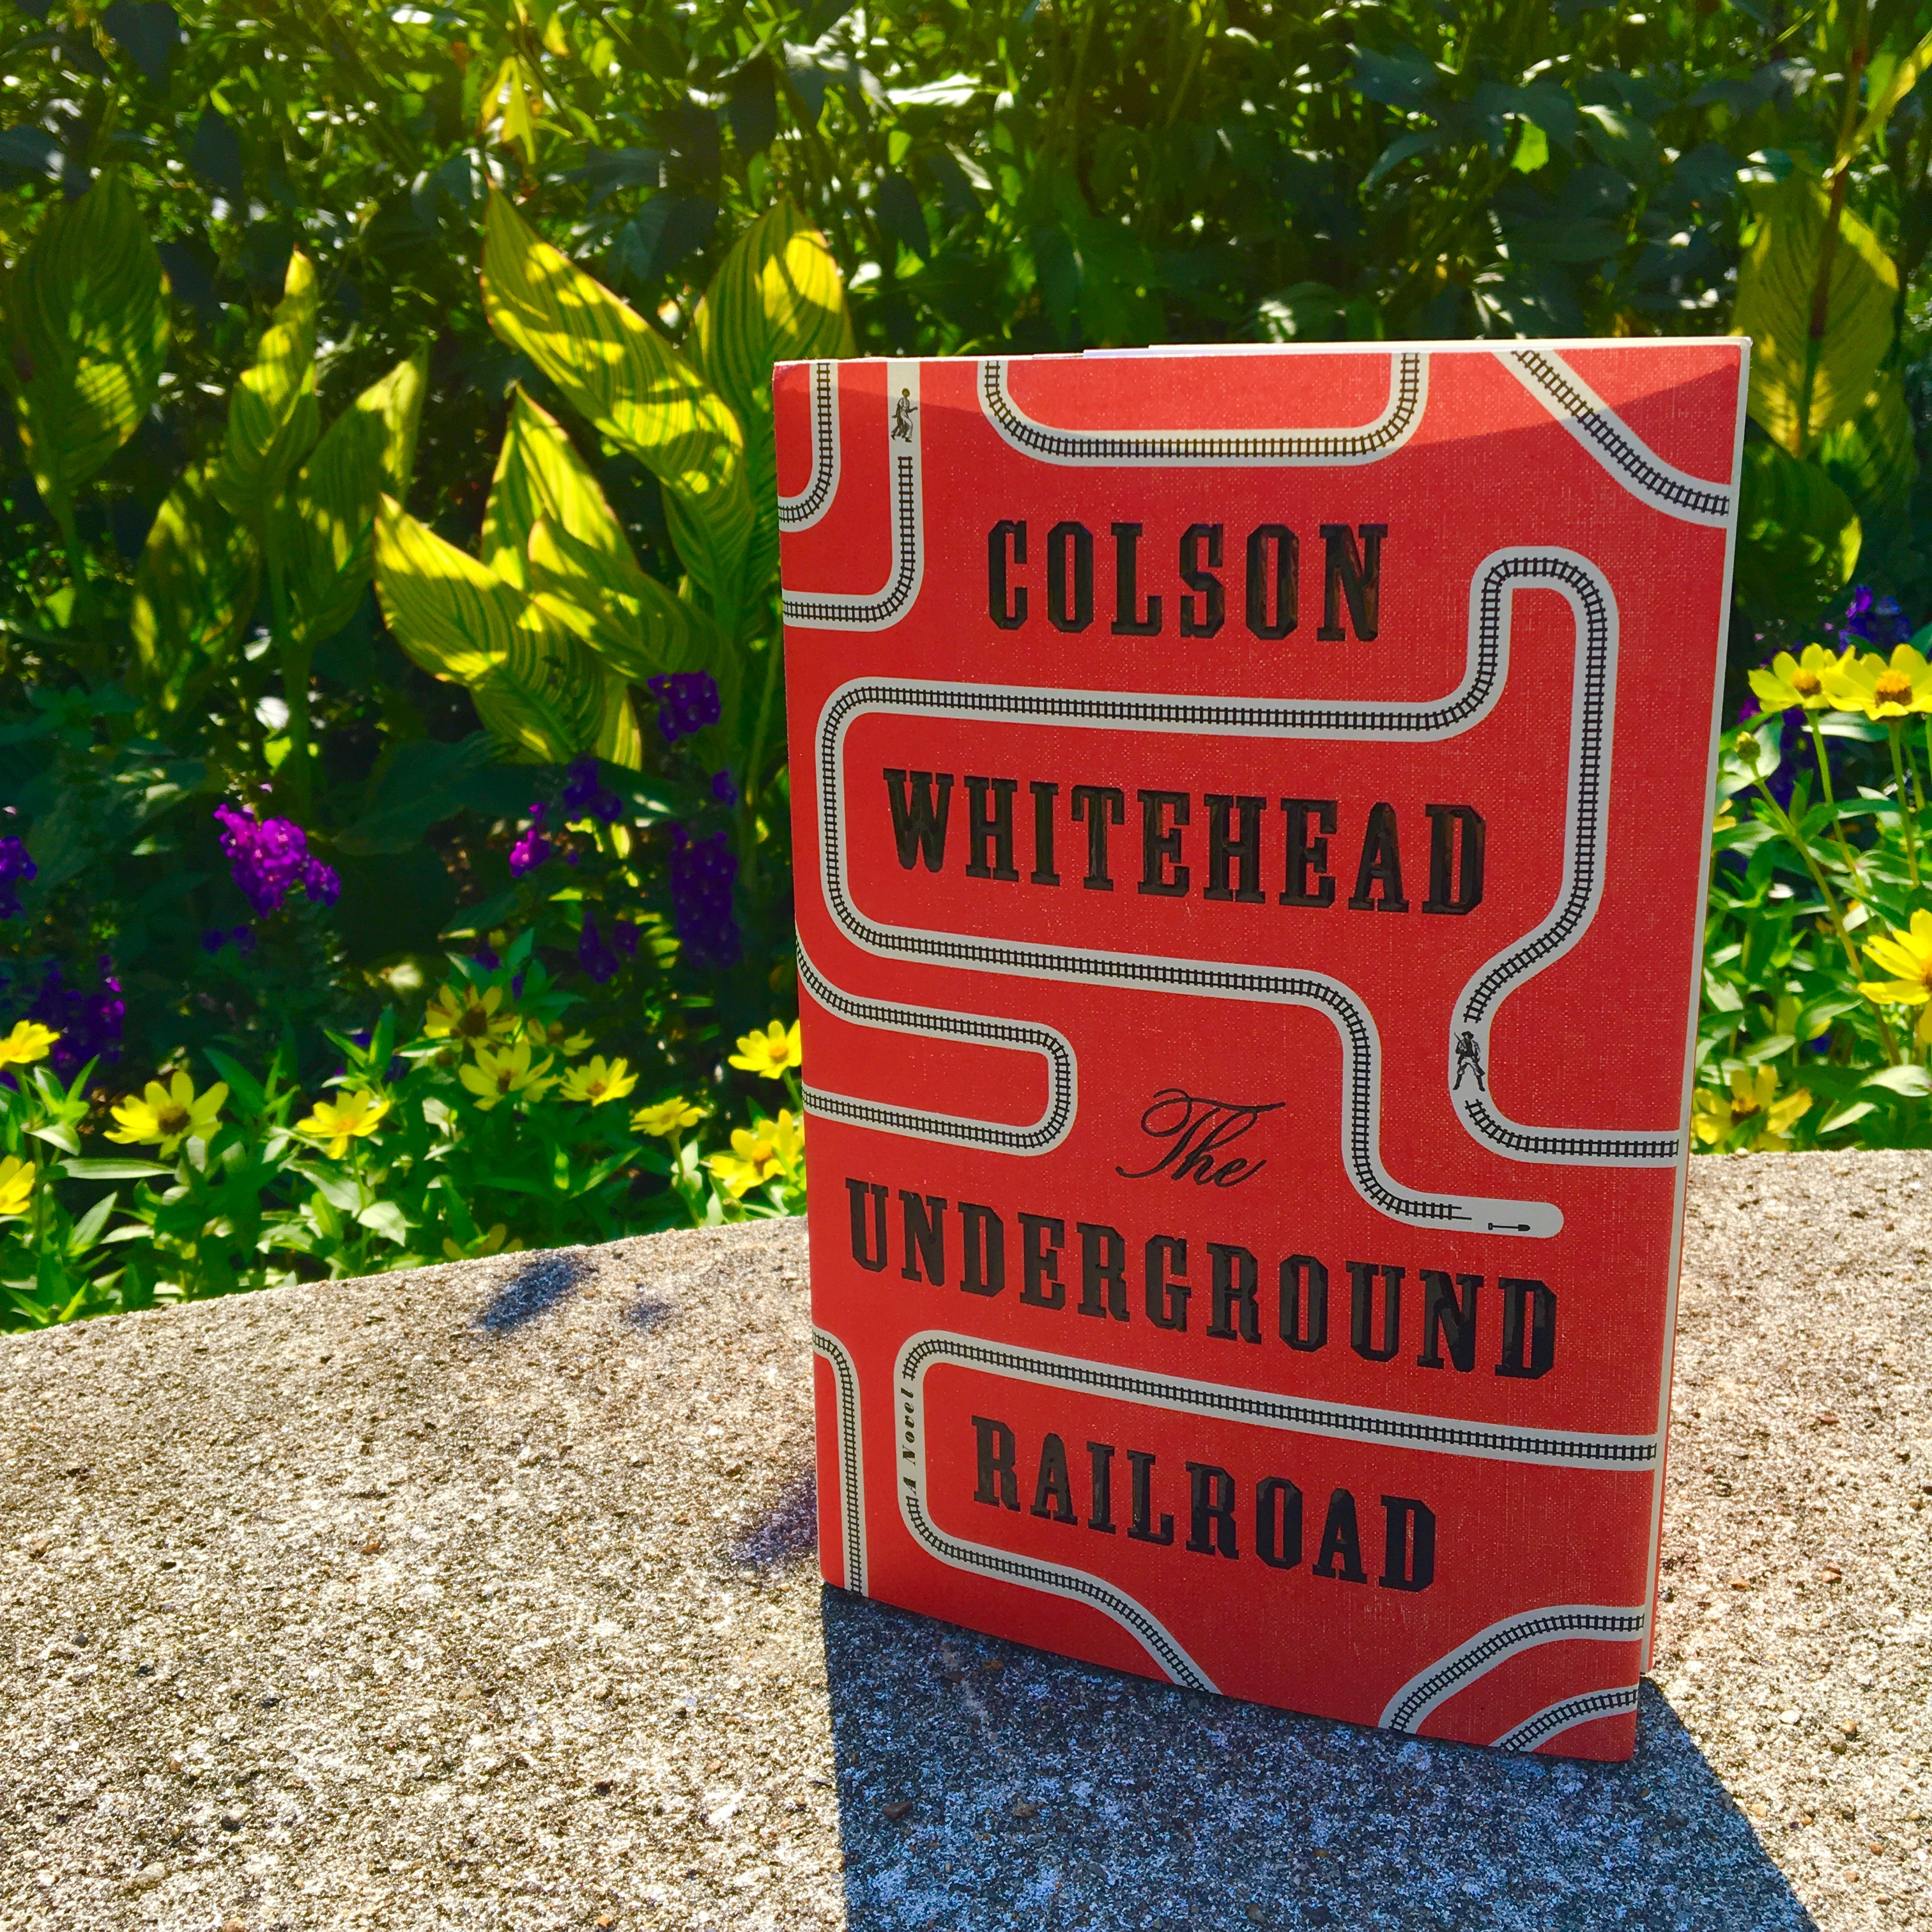 Recommended Reading The Underground Railroad By Colson